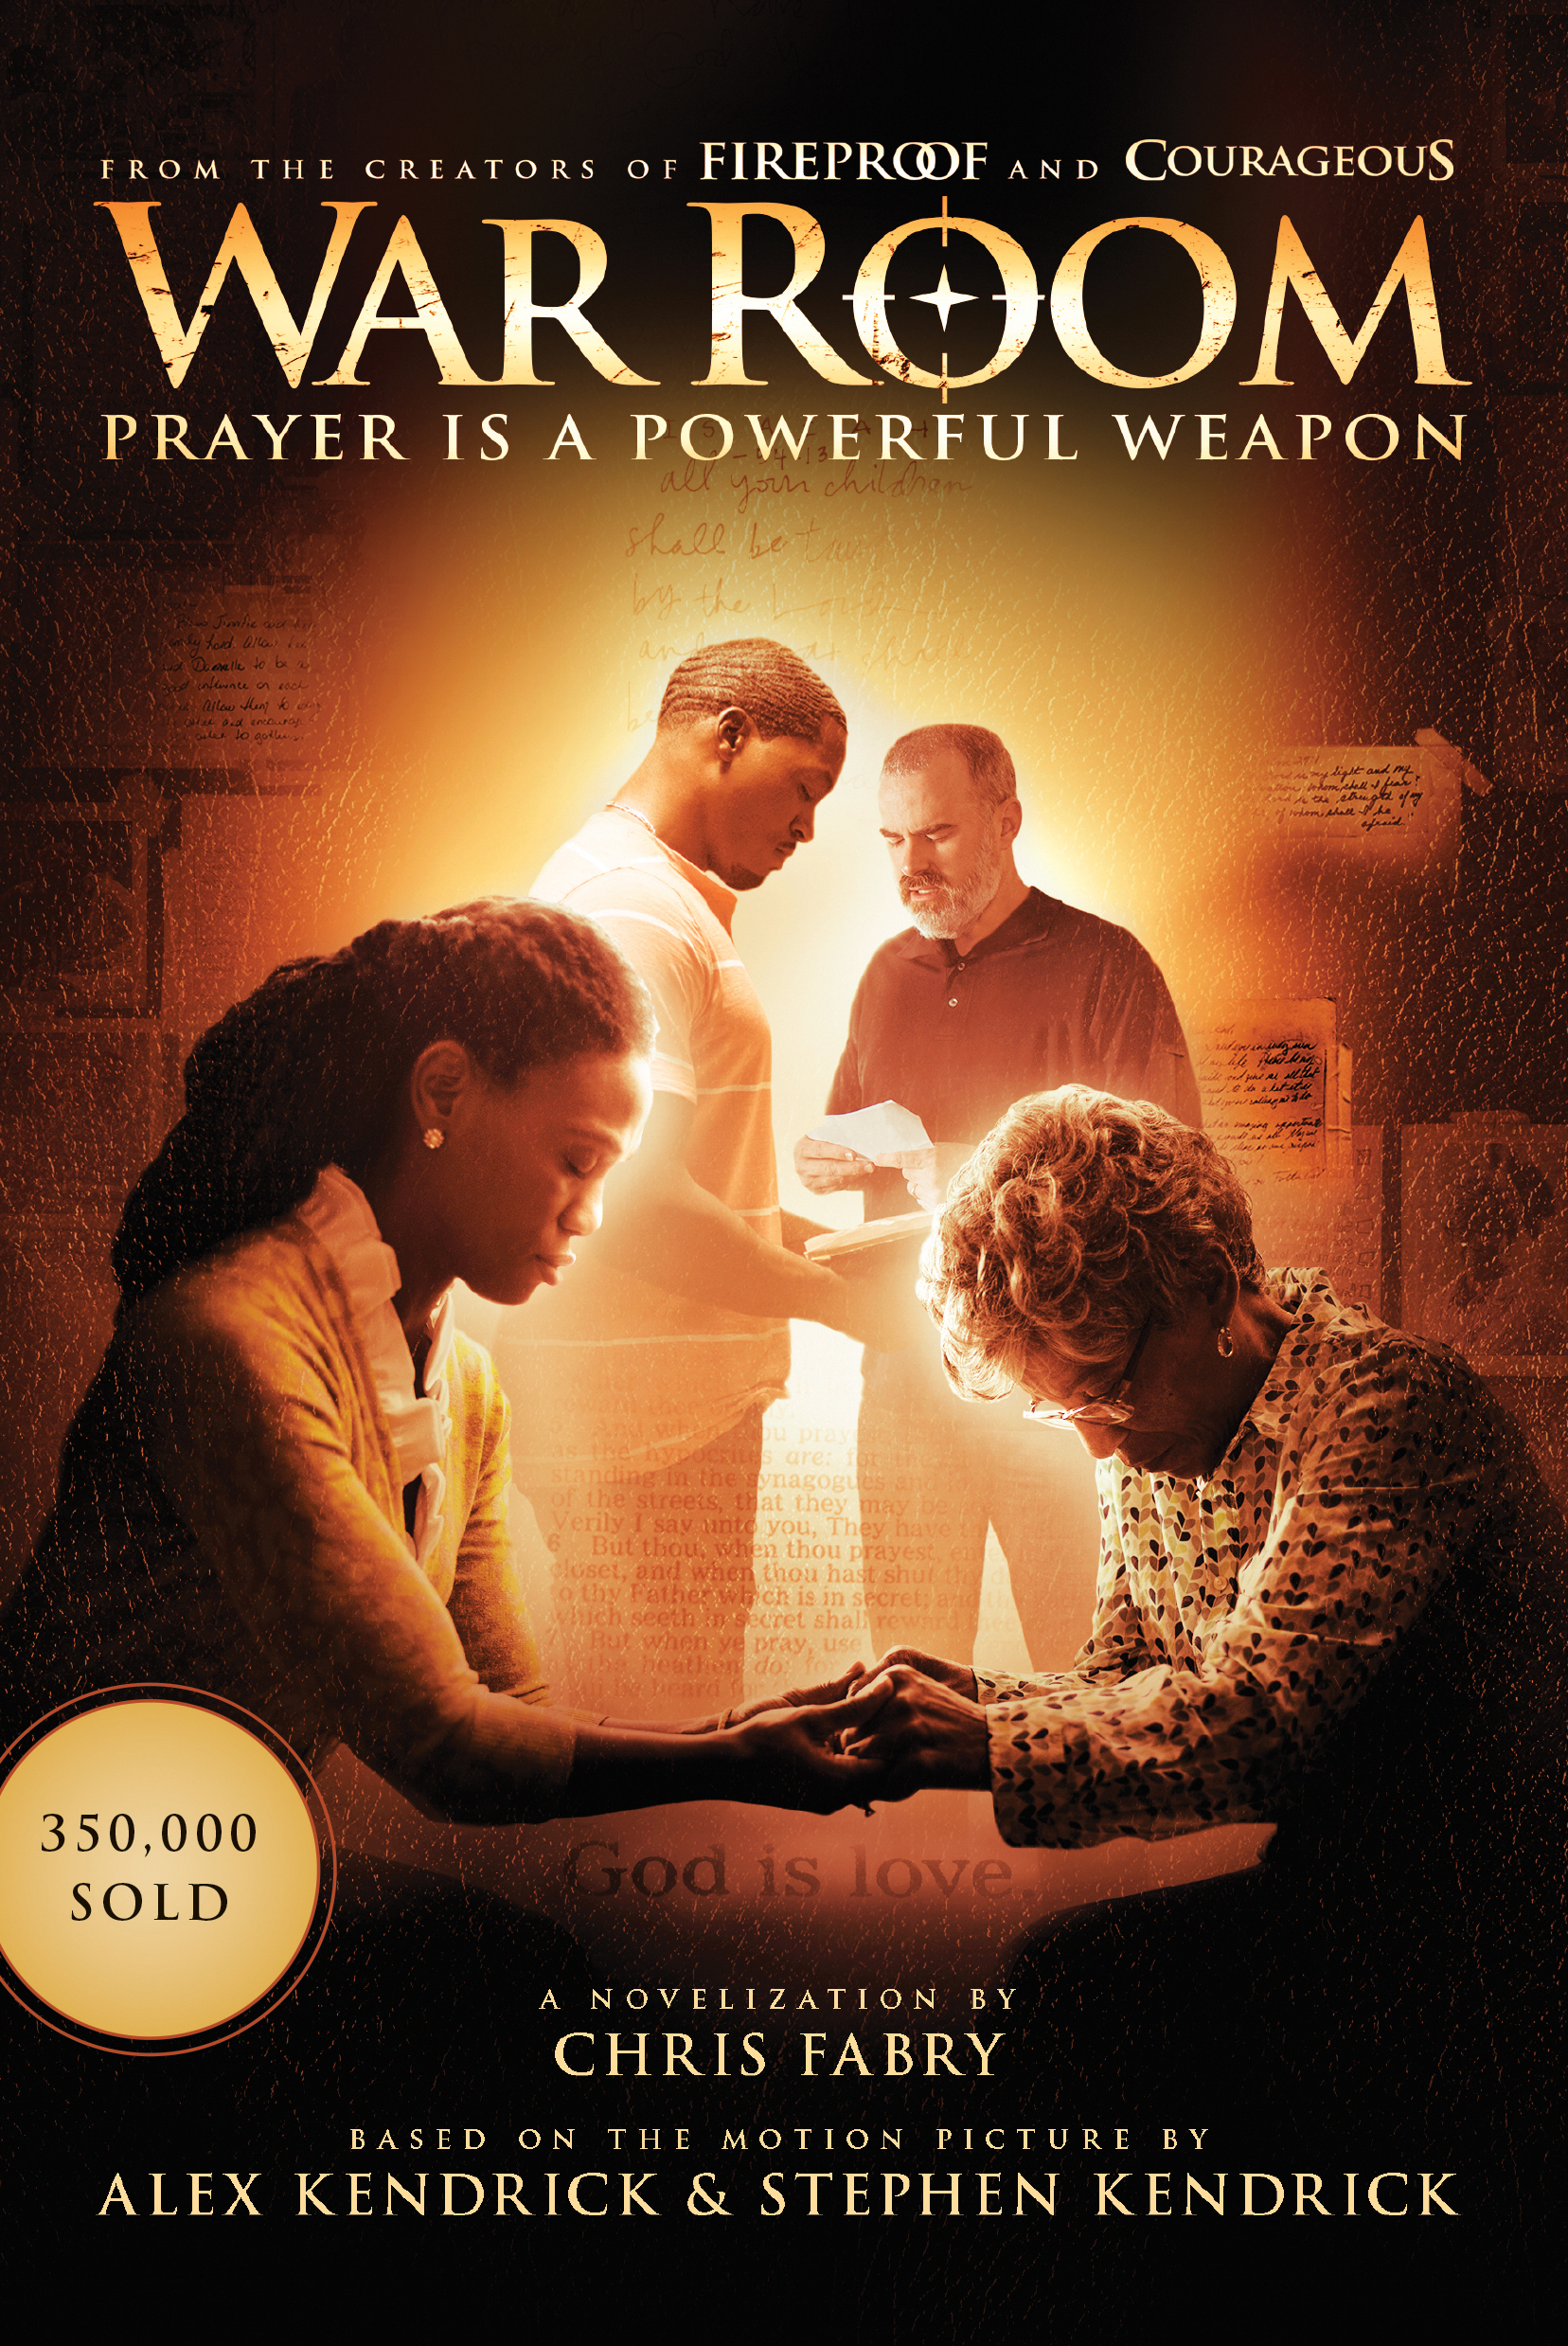 War Room Prayer Is a Powerful Weapon